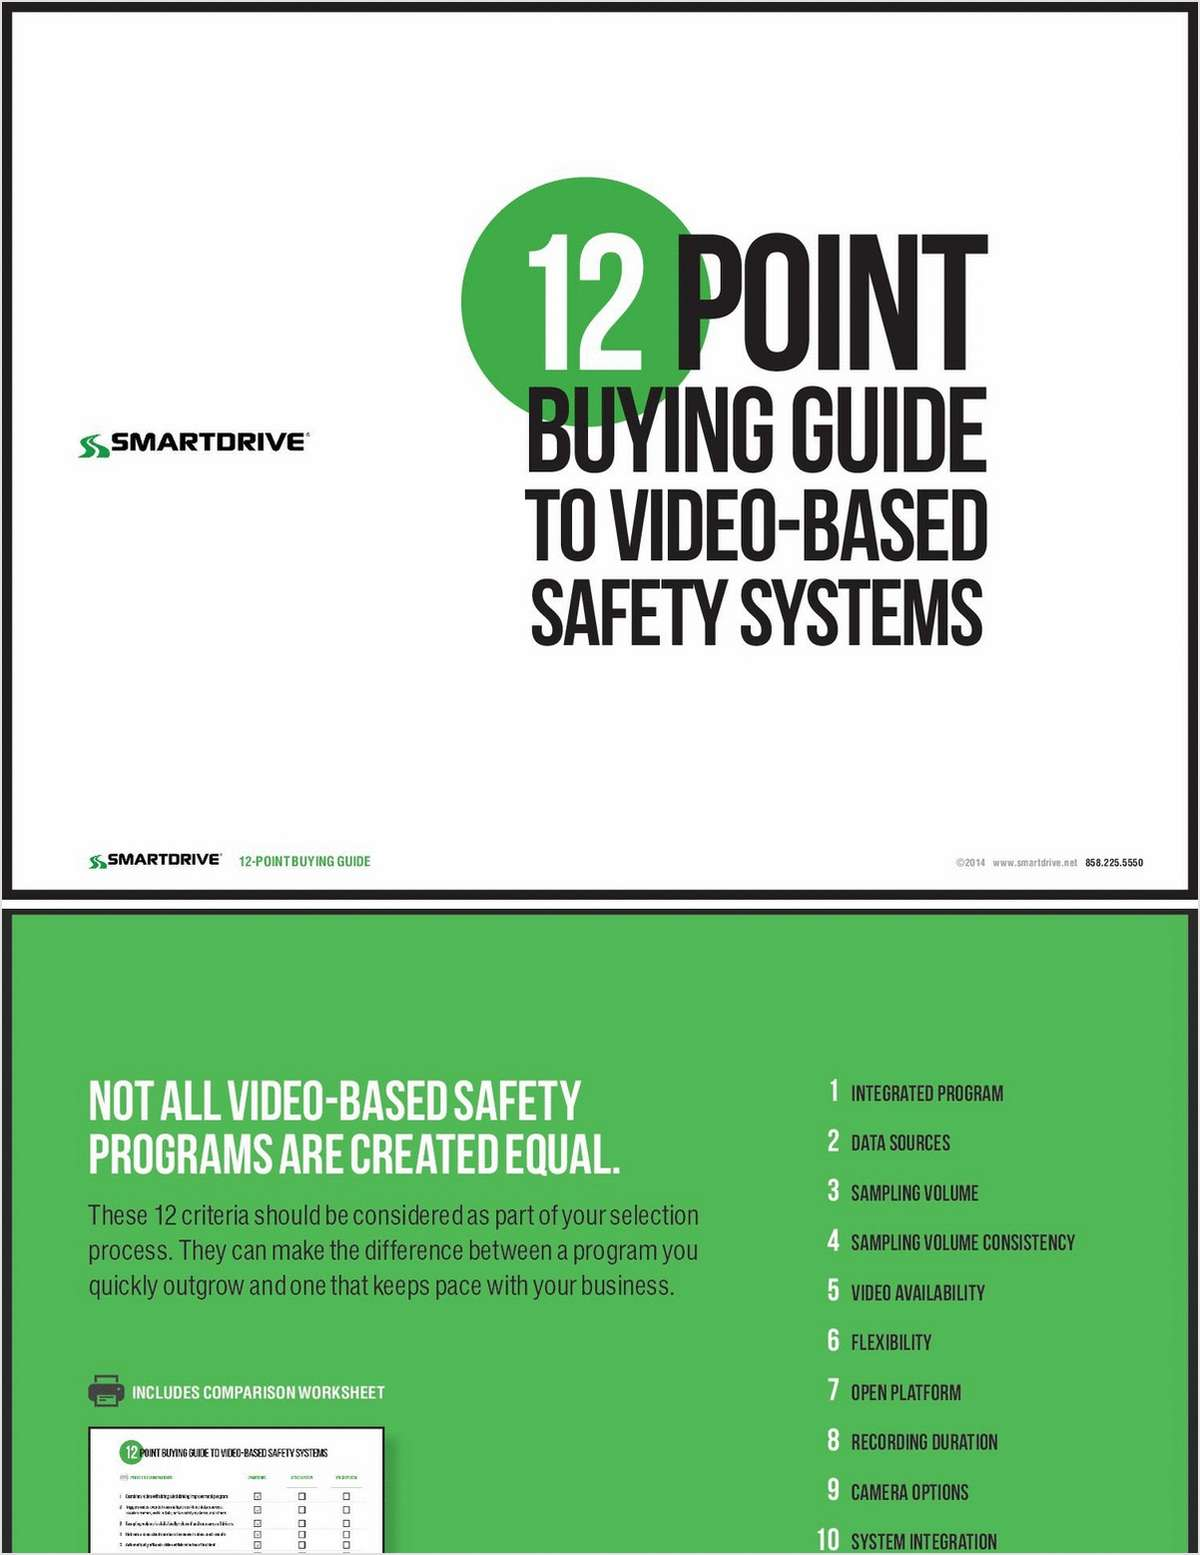 12 Point Buying Guide to Video-Based Safety Systems